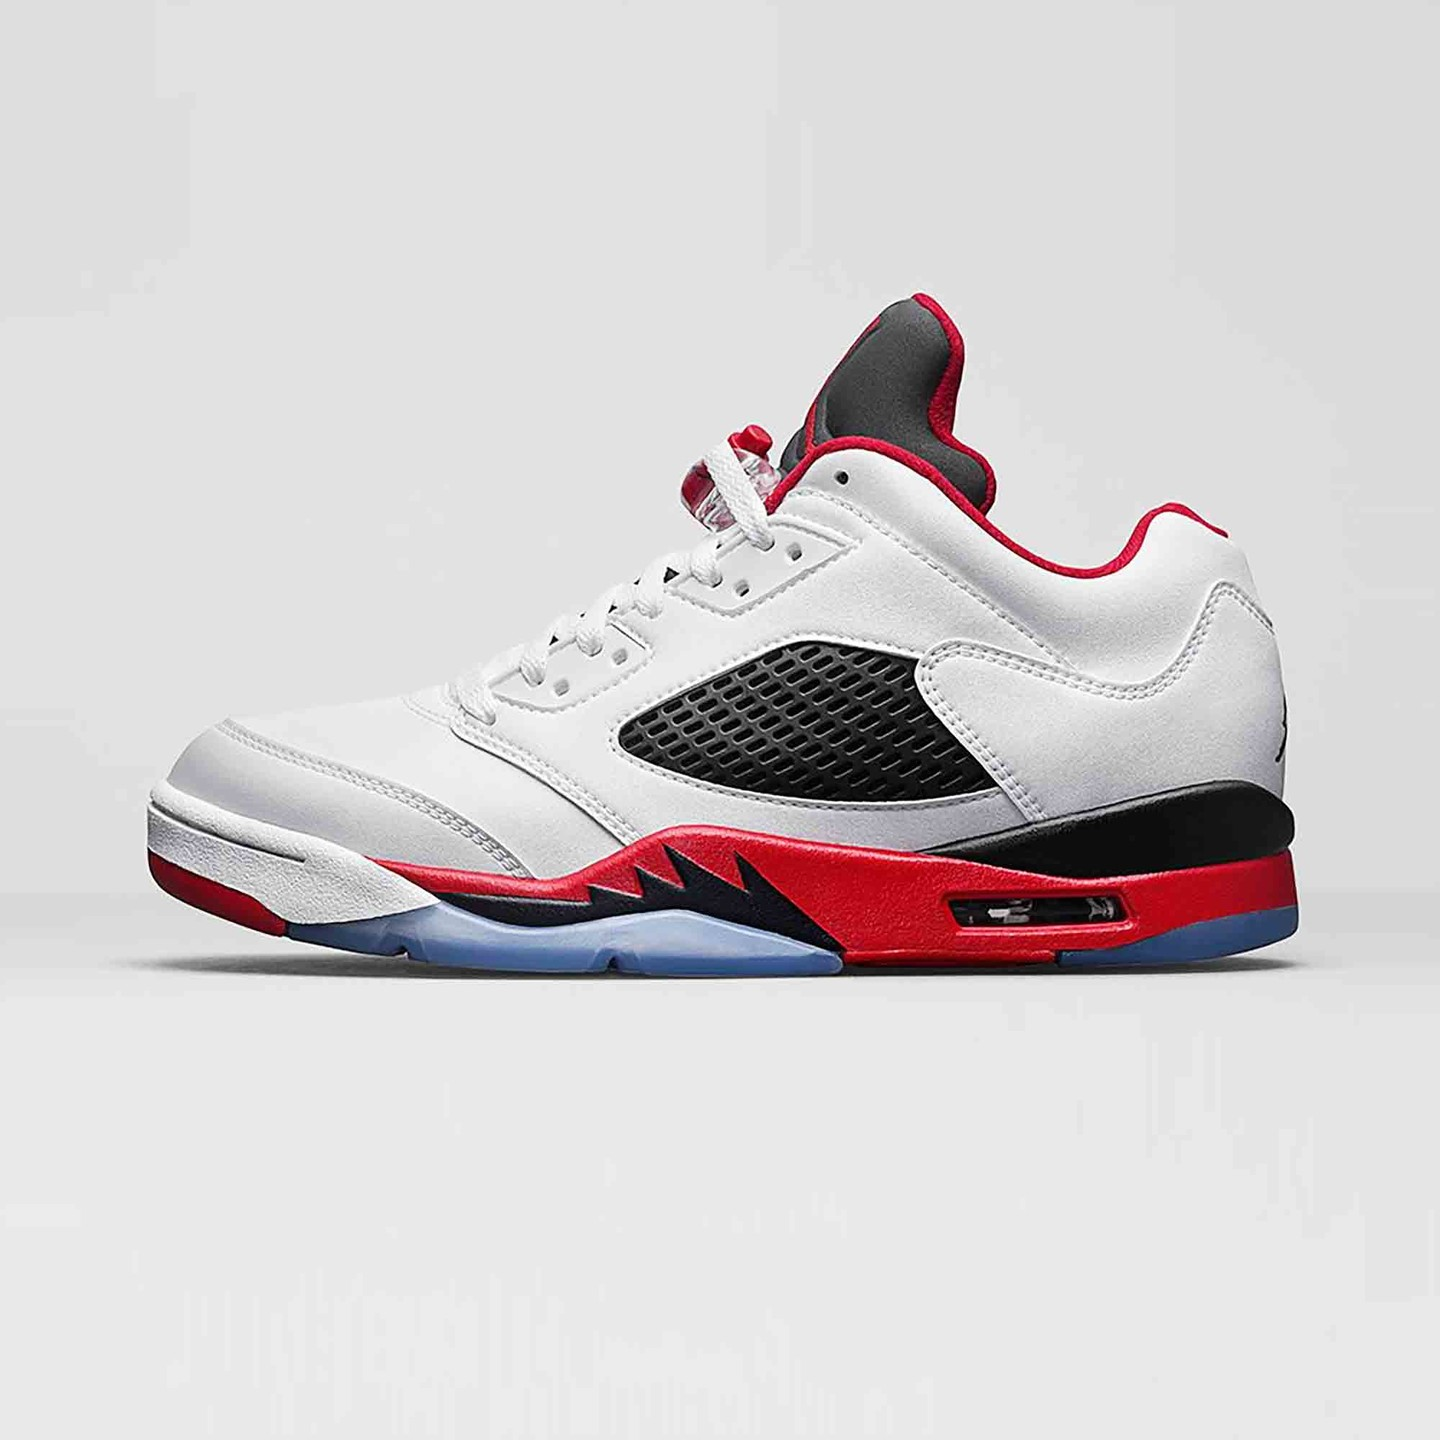 Jordan Air Jordan 5 Low Retro 'Fire Red' White / Fire Red / Black 819171-101-42